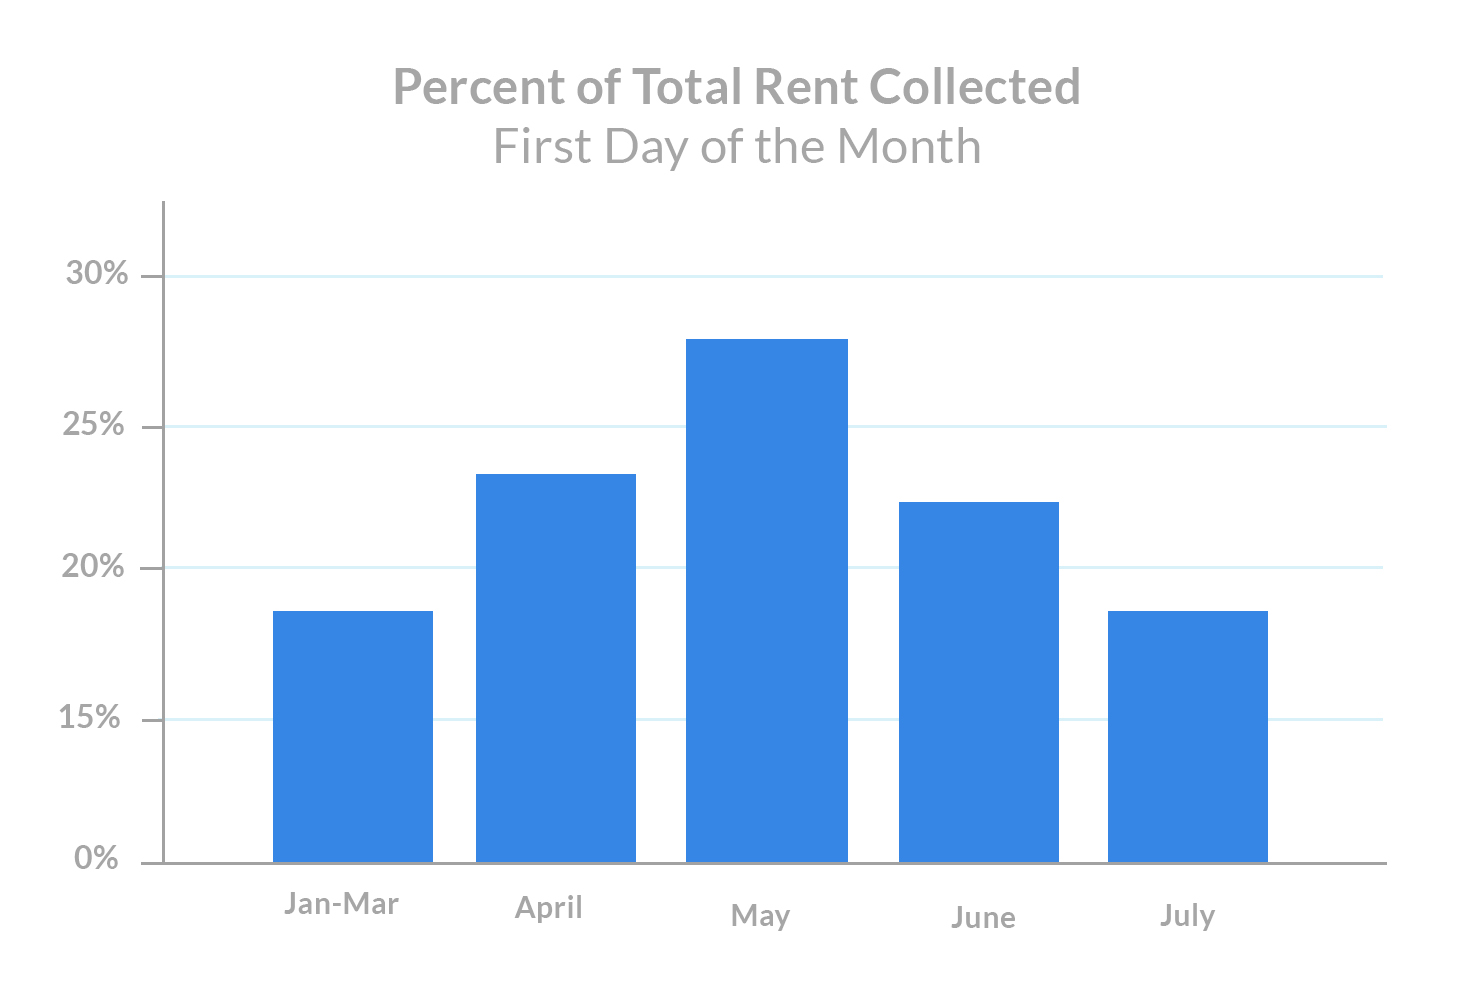 july 1st rent payments Percent of Total Rrent Collected